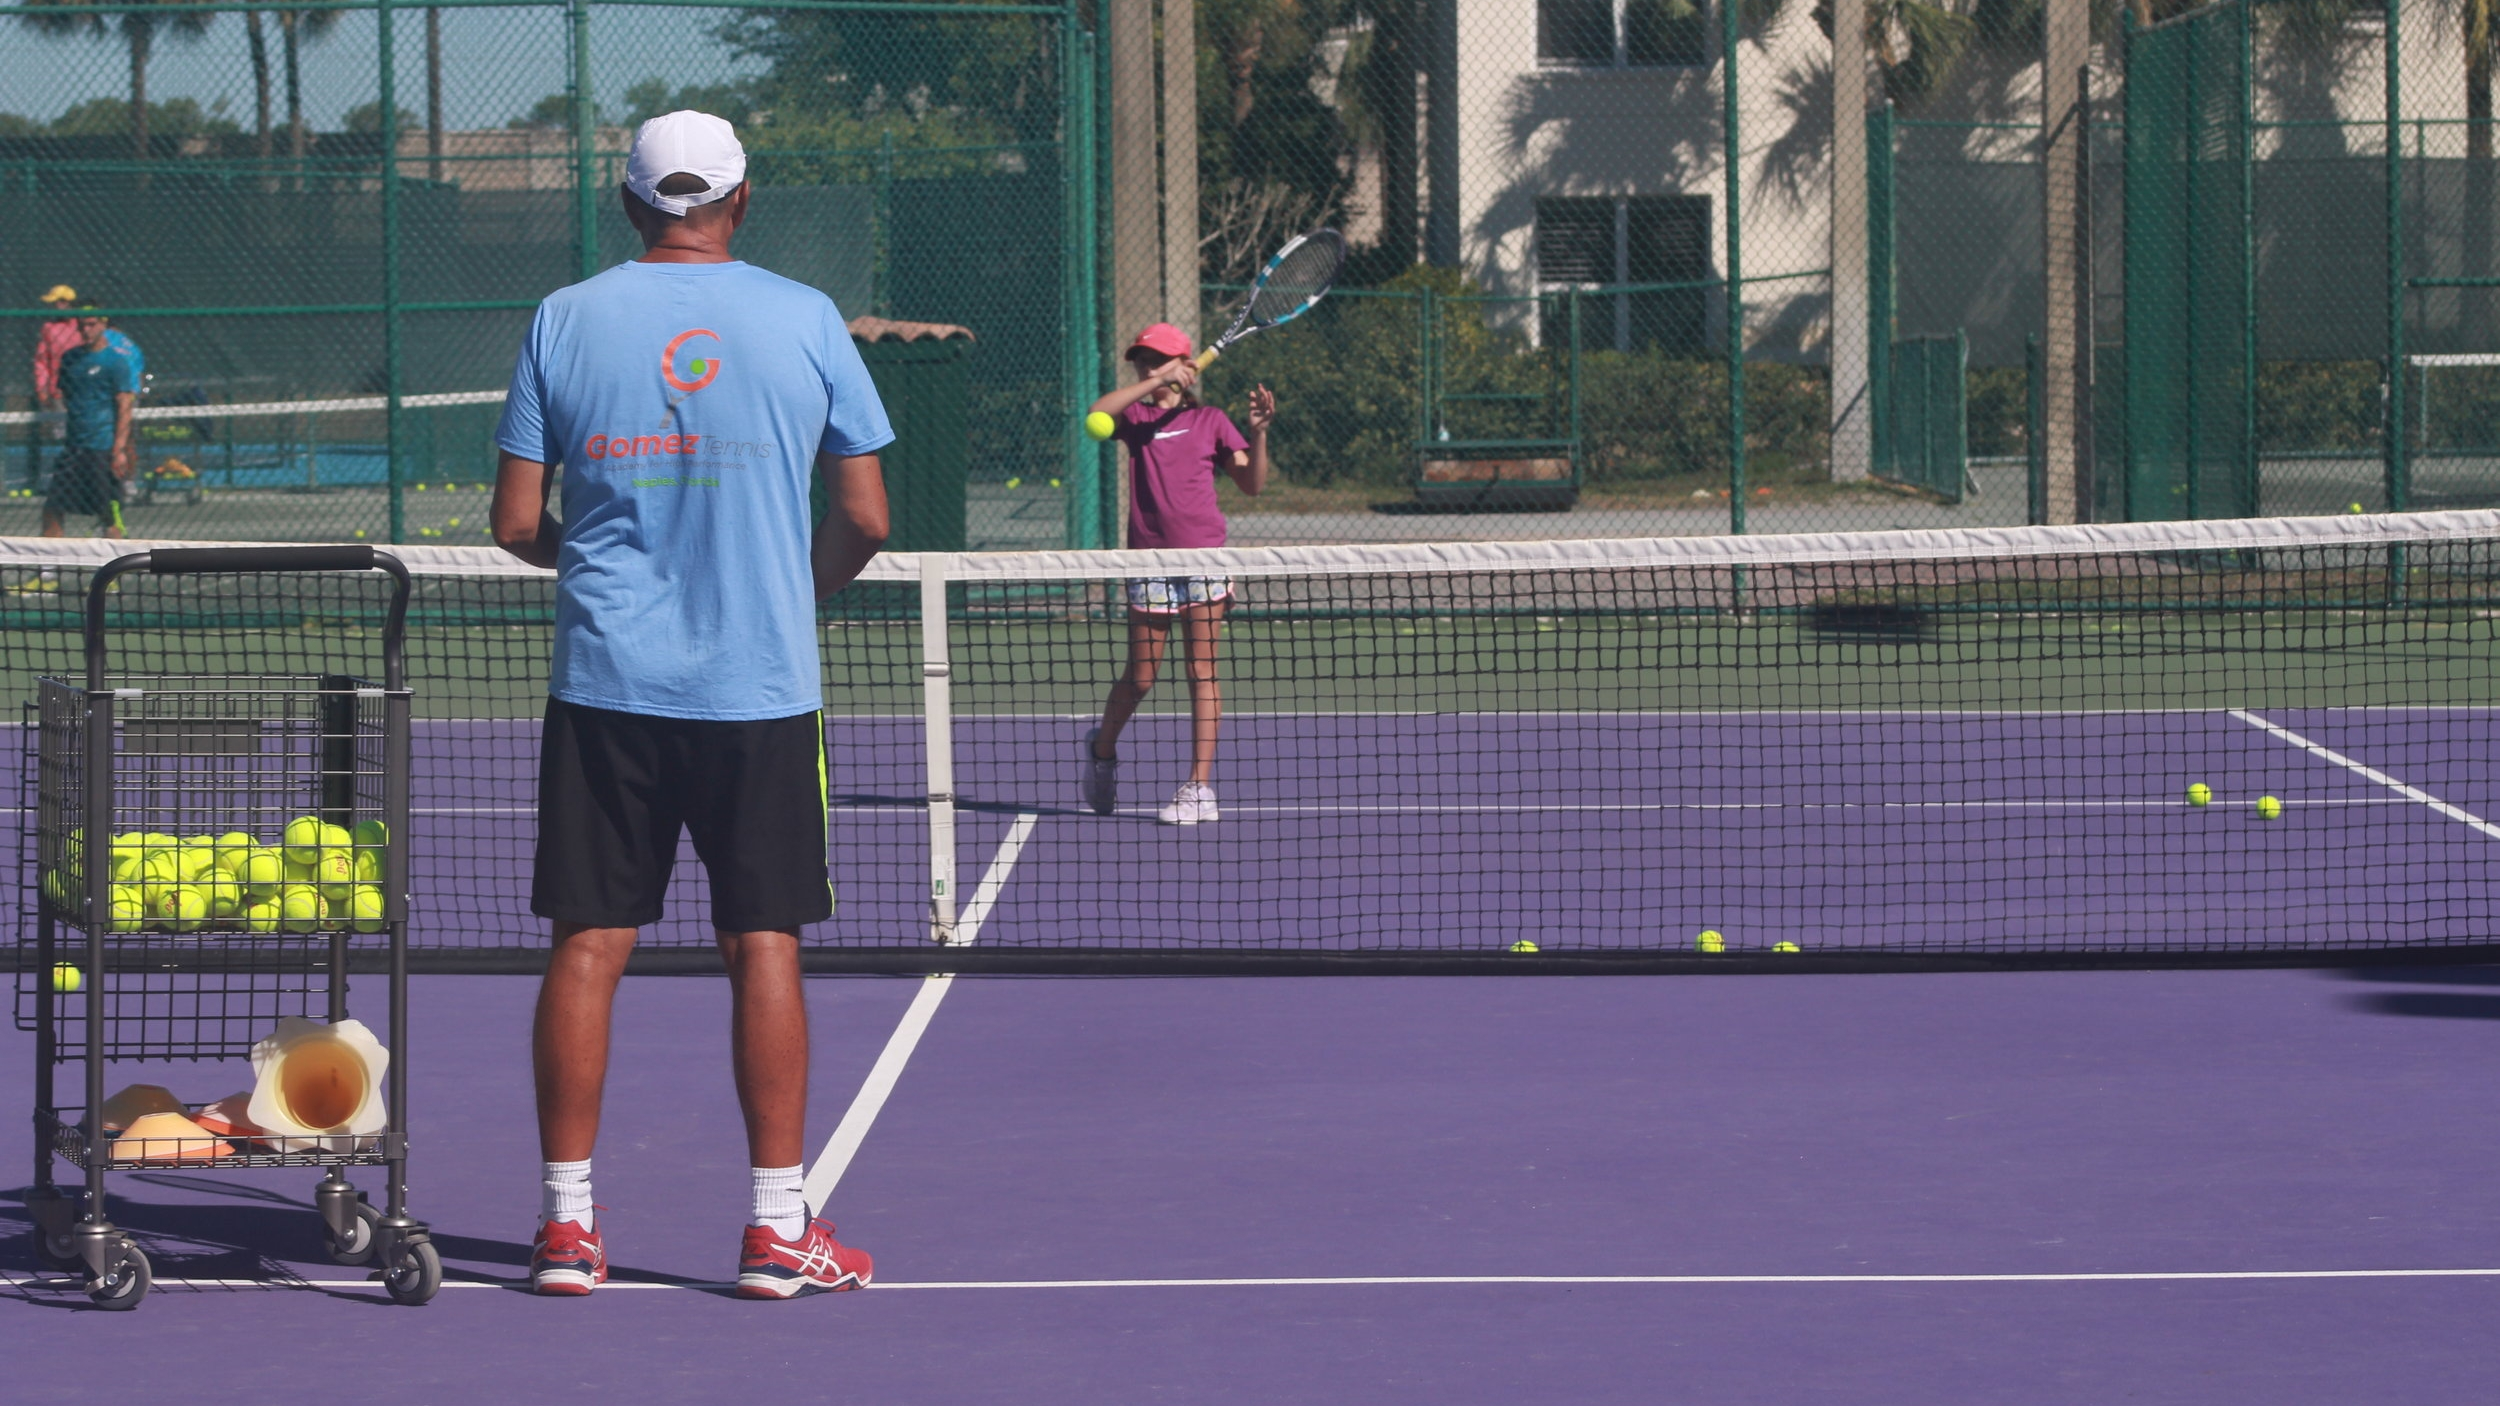 AFTERNOON  ACADEMY - Offers young players, typically 12 & under, the opportunity to develop the proper technique & movement for a lifetime of tennis.